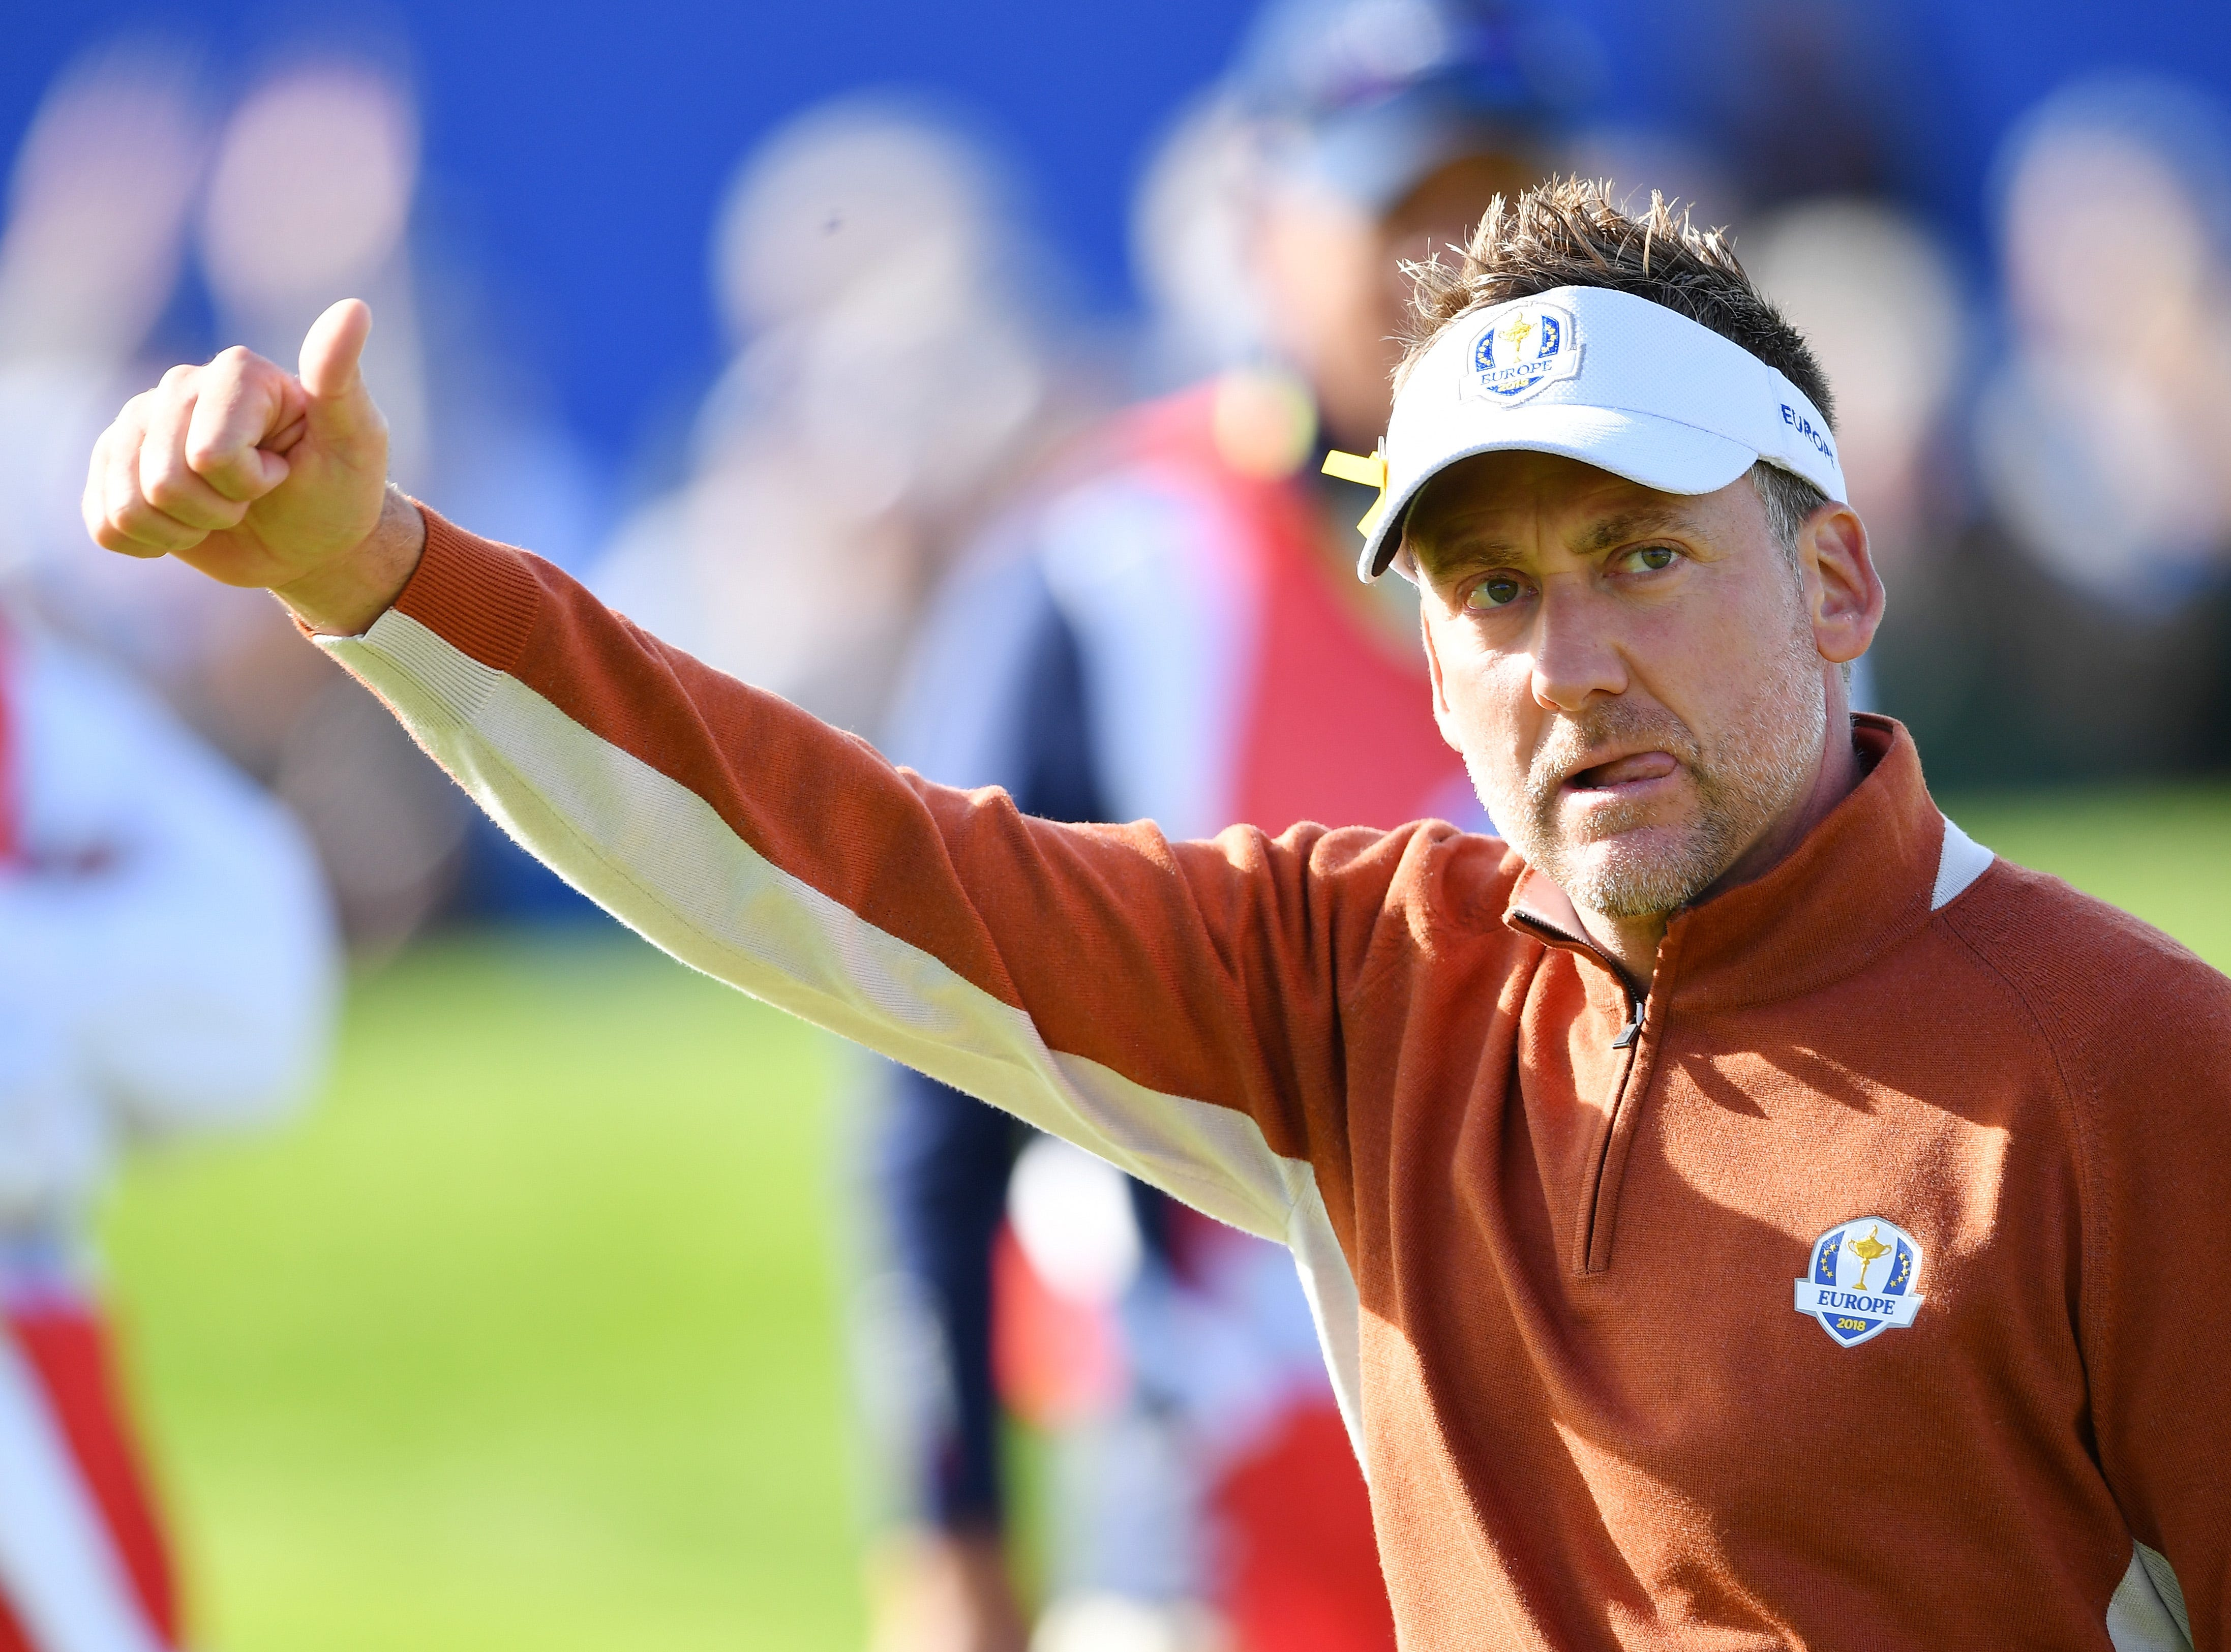 Ian Poulter of Europe celebrates on the seventh during the morning fourball matches of the 2018 Ryder Cup at Le Golf National.